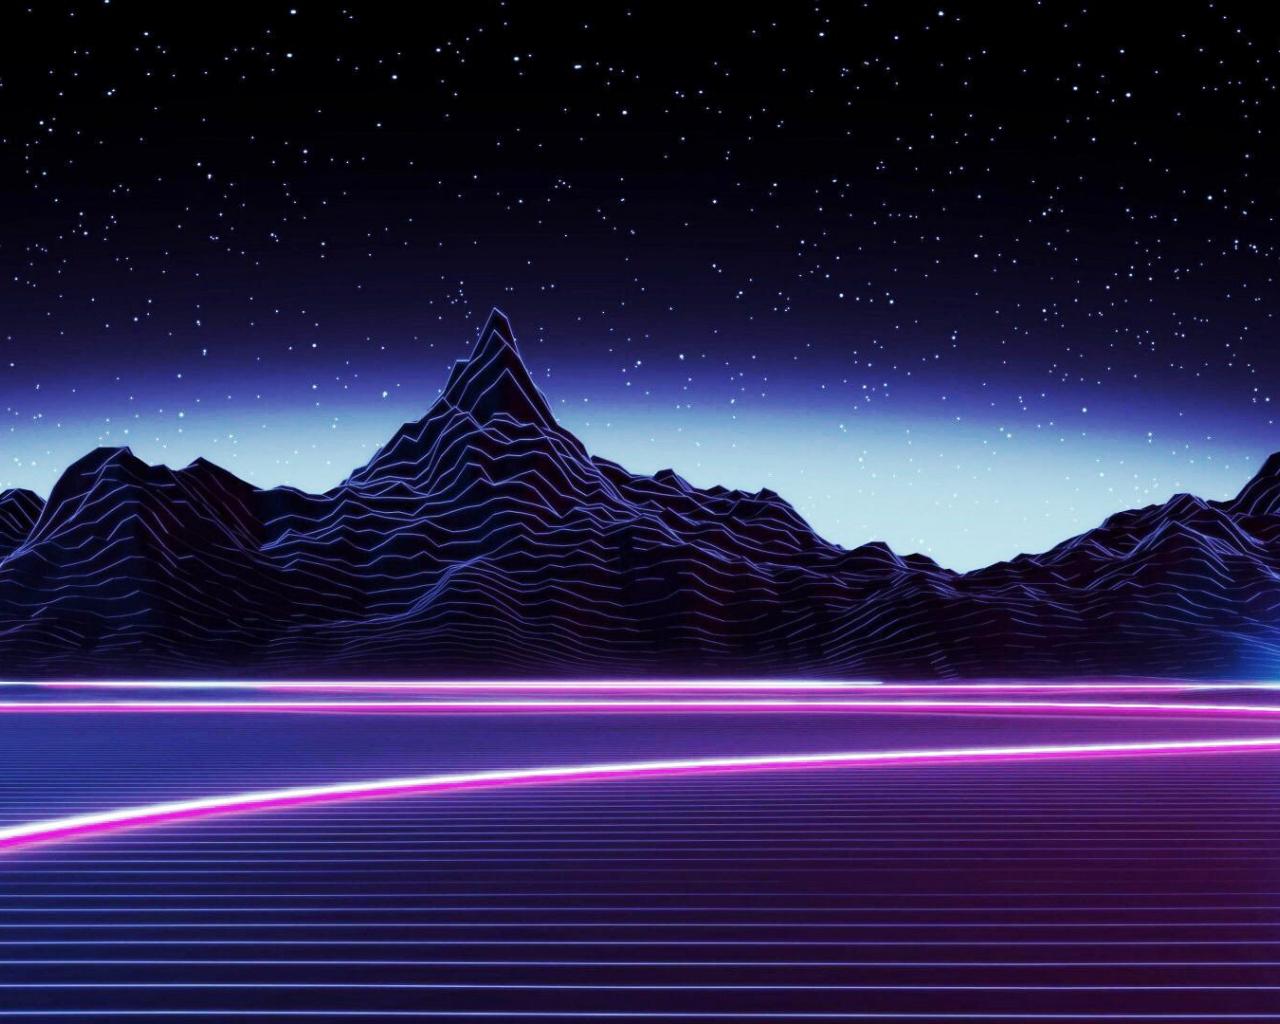 Free Download Desktop Neon Mountain Wallpaper Dark Aesthetic